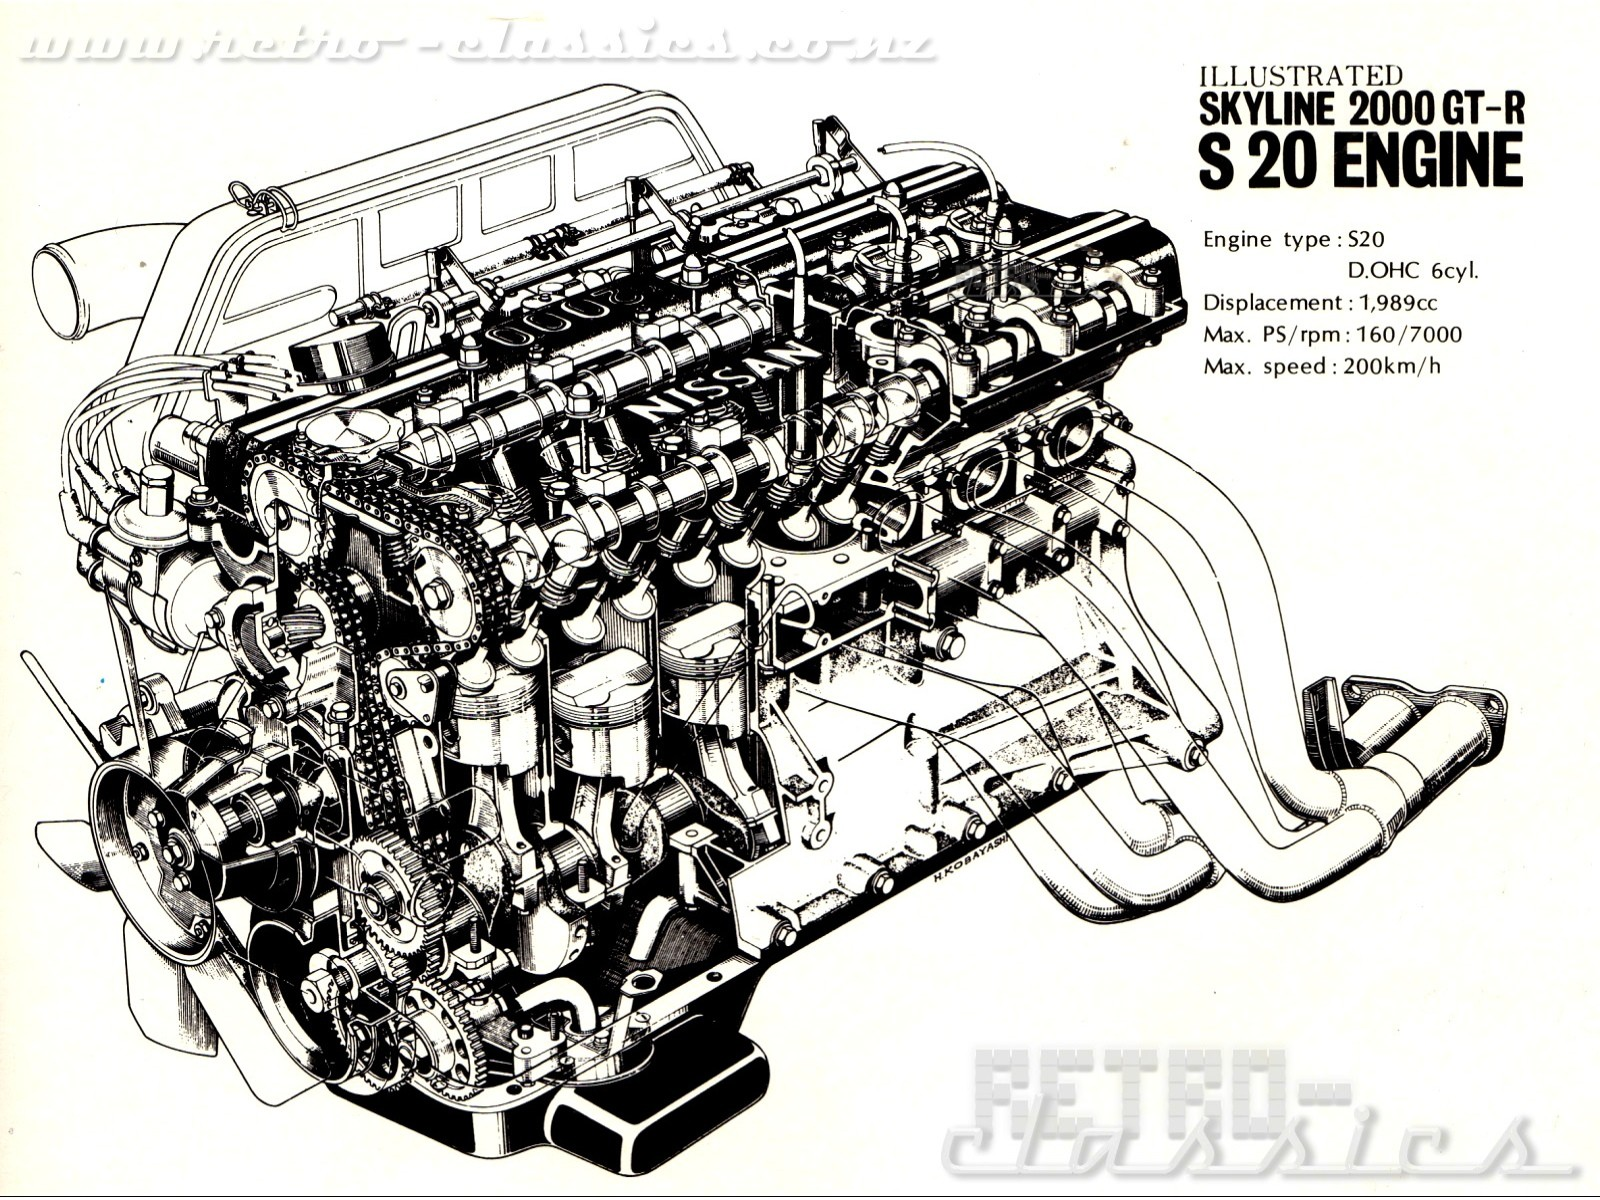 2000 Ford 4 0 Engine Diagram Wiring Library Liter Sohc S20 Cut Away Datsun Print Pinterest Of